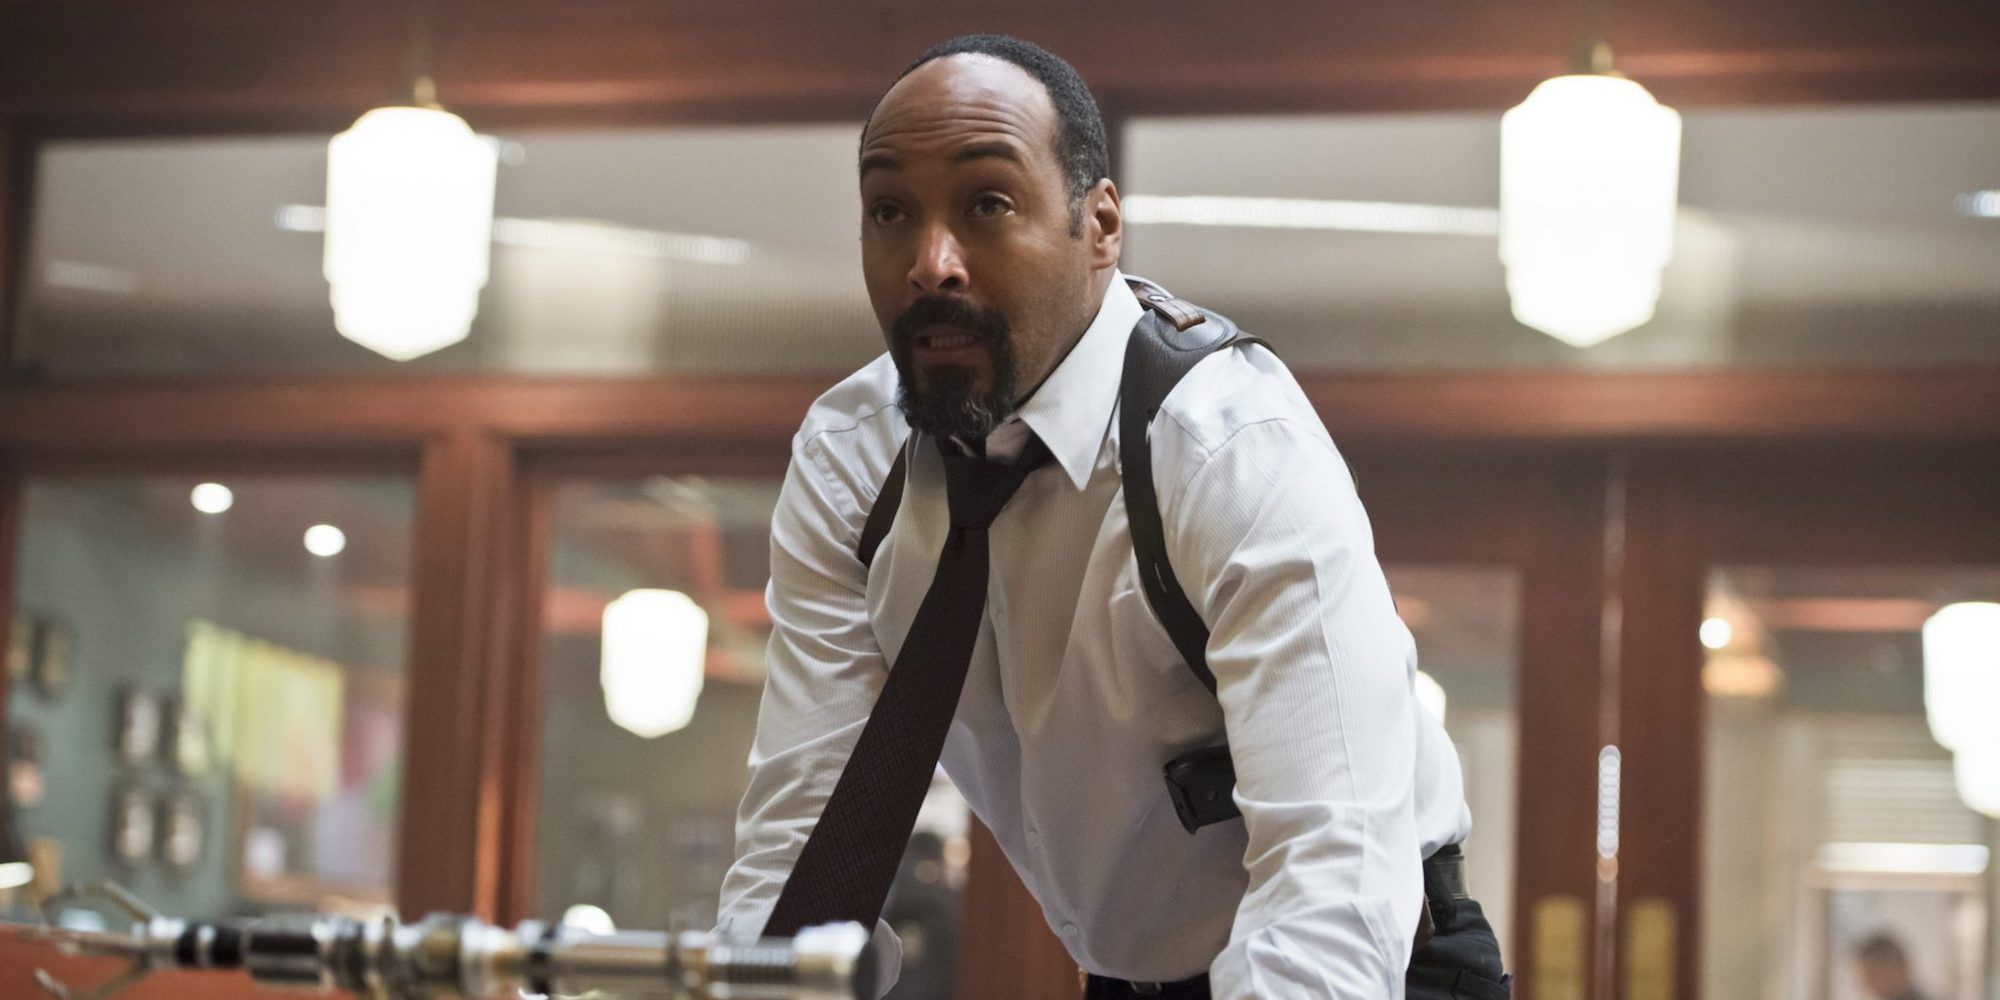 The Flash's Jesse L. Martin Is Taking A Medical Leave of Absence